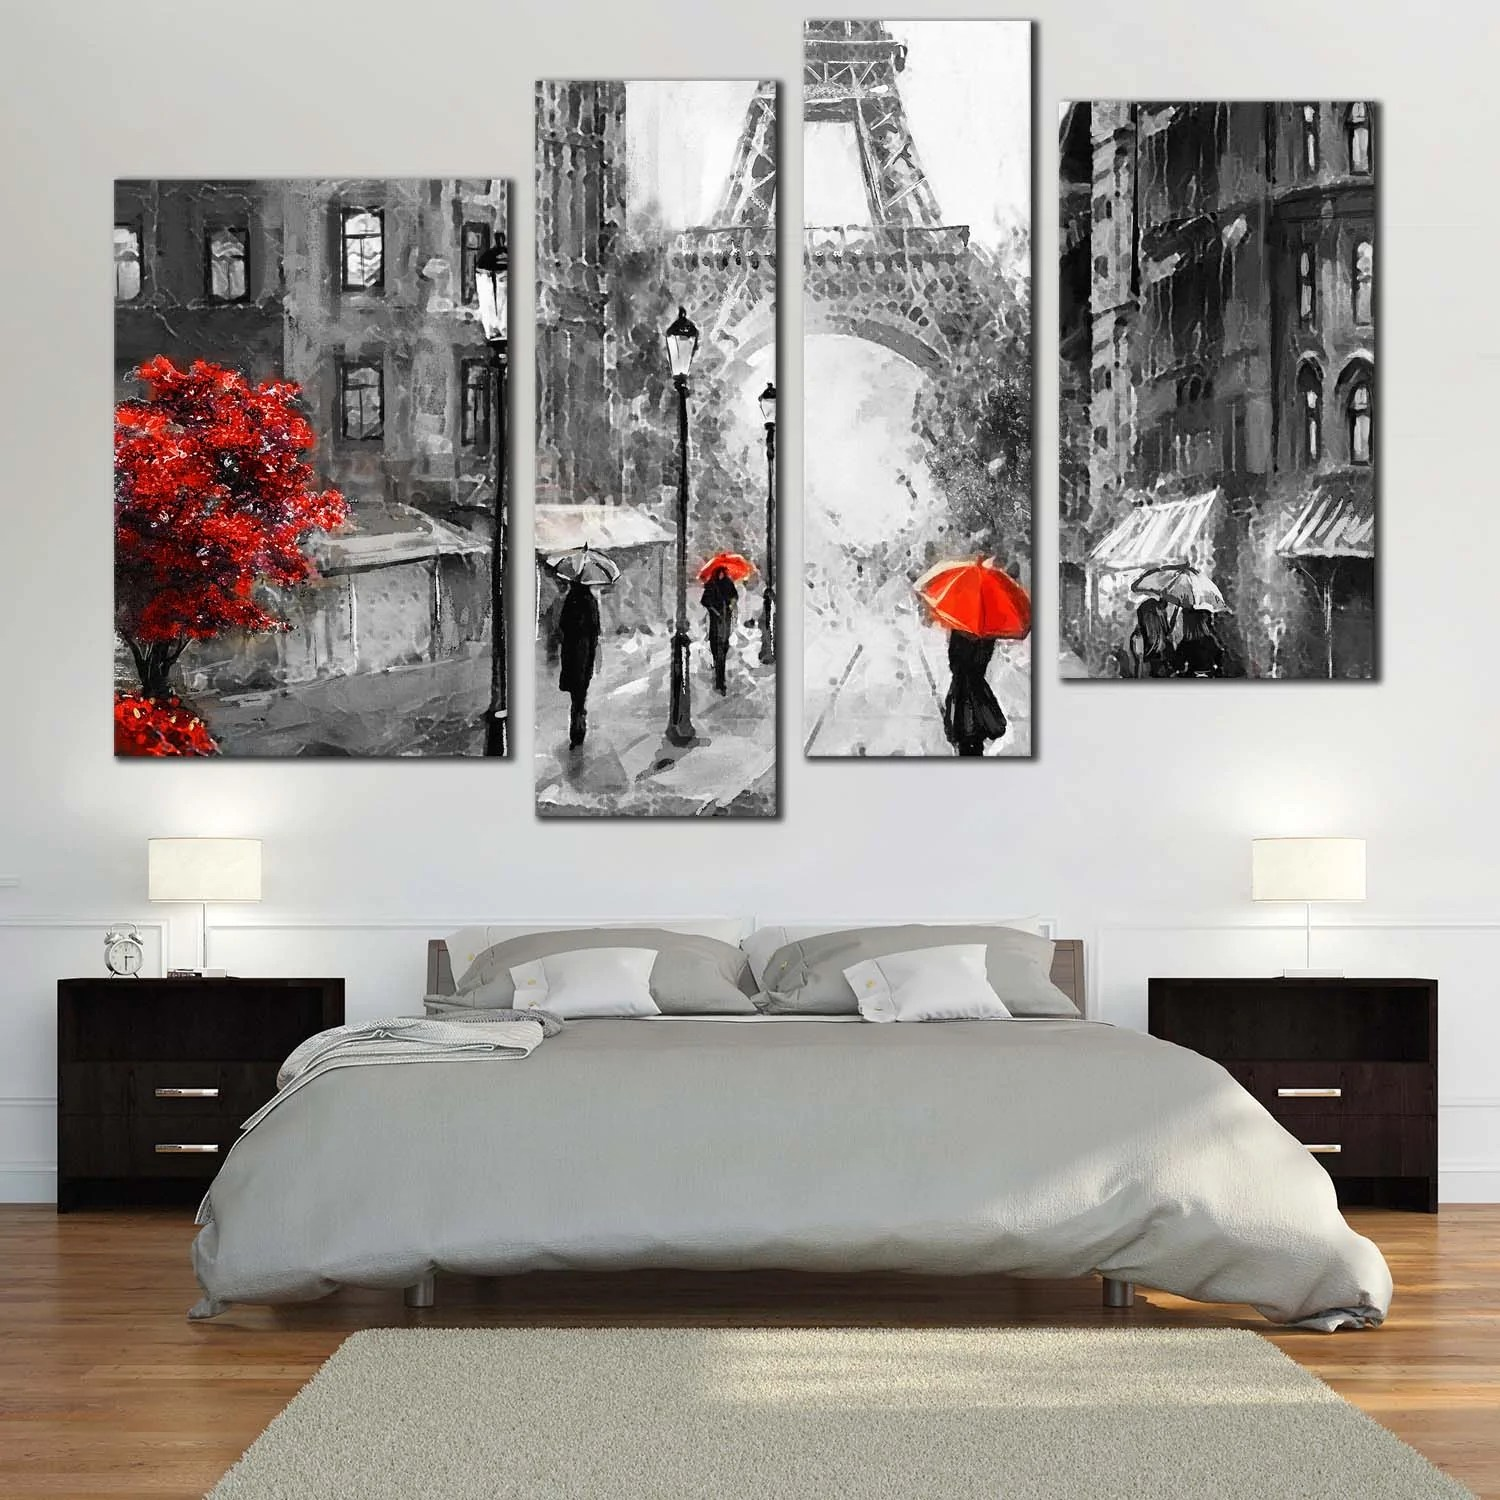 Black And White Artwork For Bedroom France Street Canvas Wall Art Red Tree People With Umbrella Canvas Print Paris Grey Cityscape 4 Piece Canvas Set